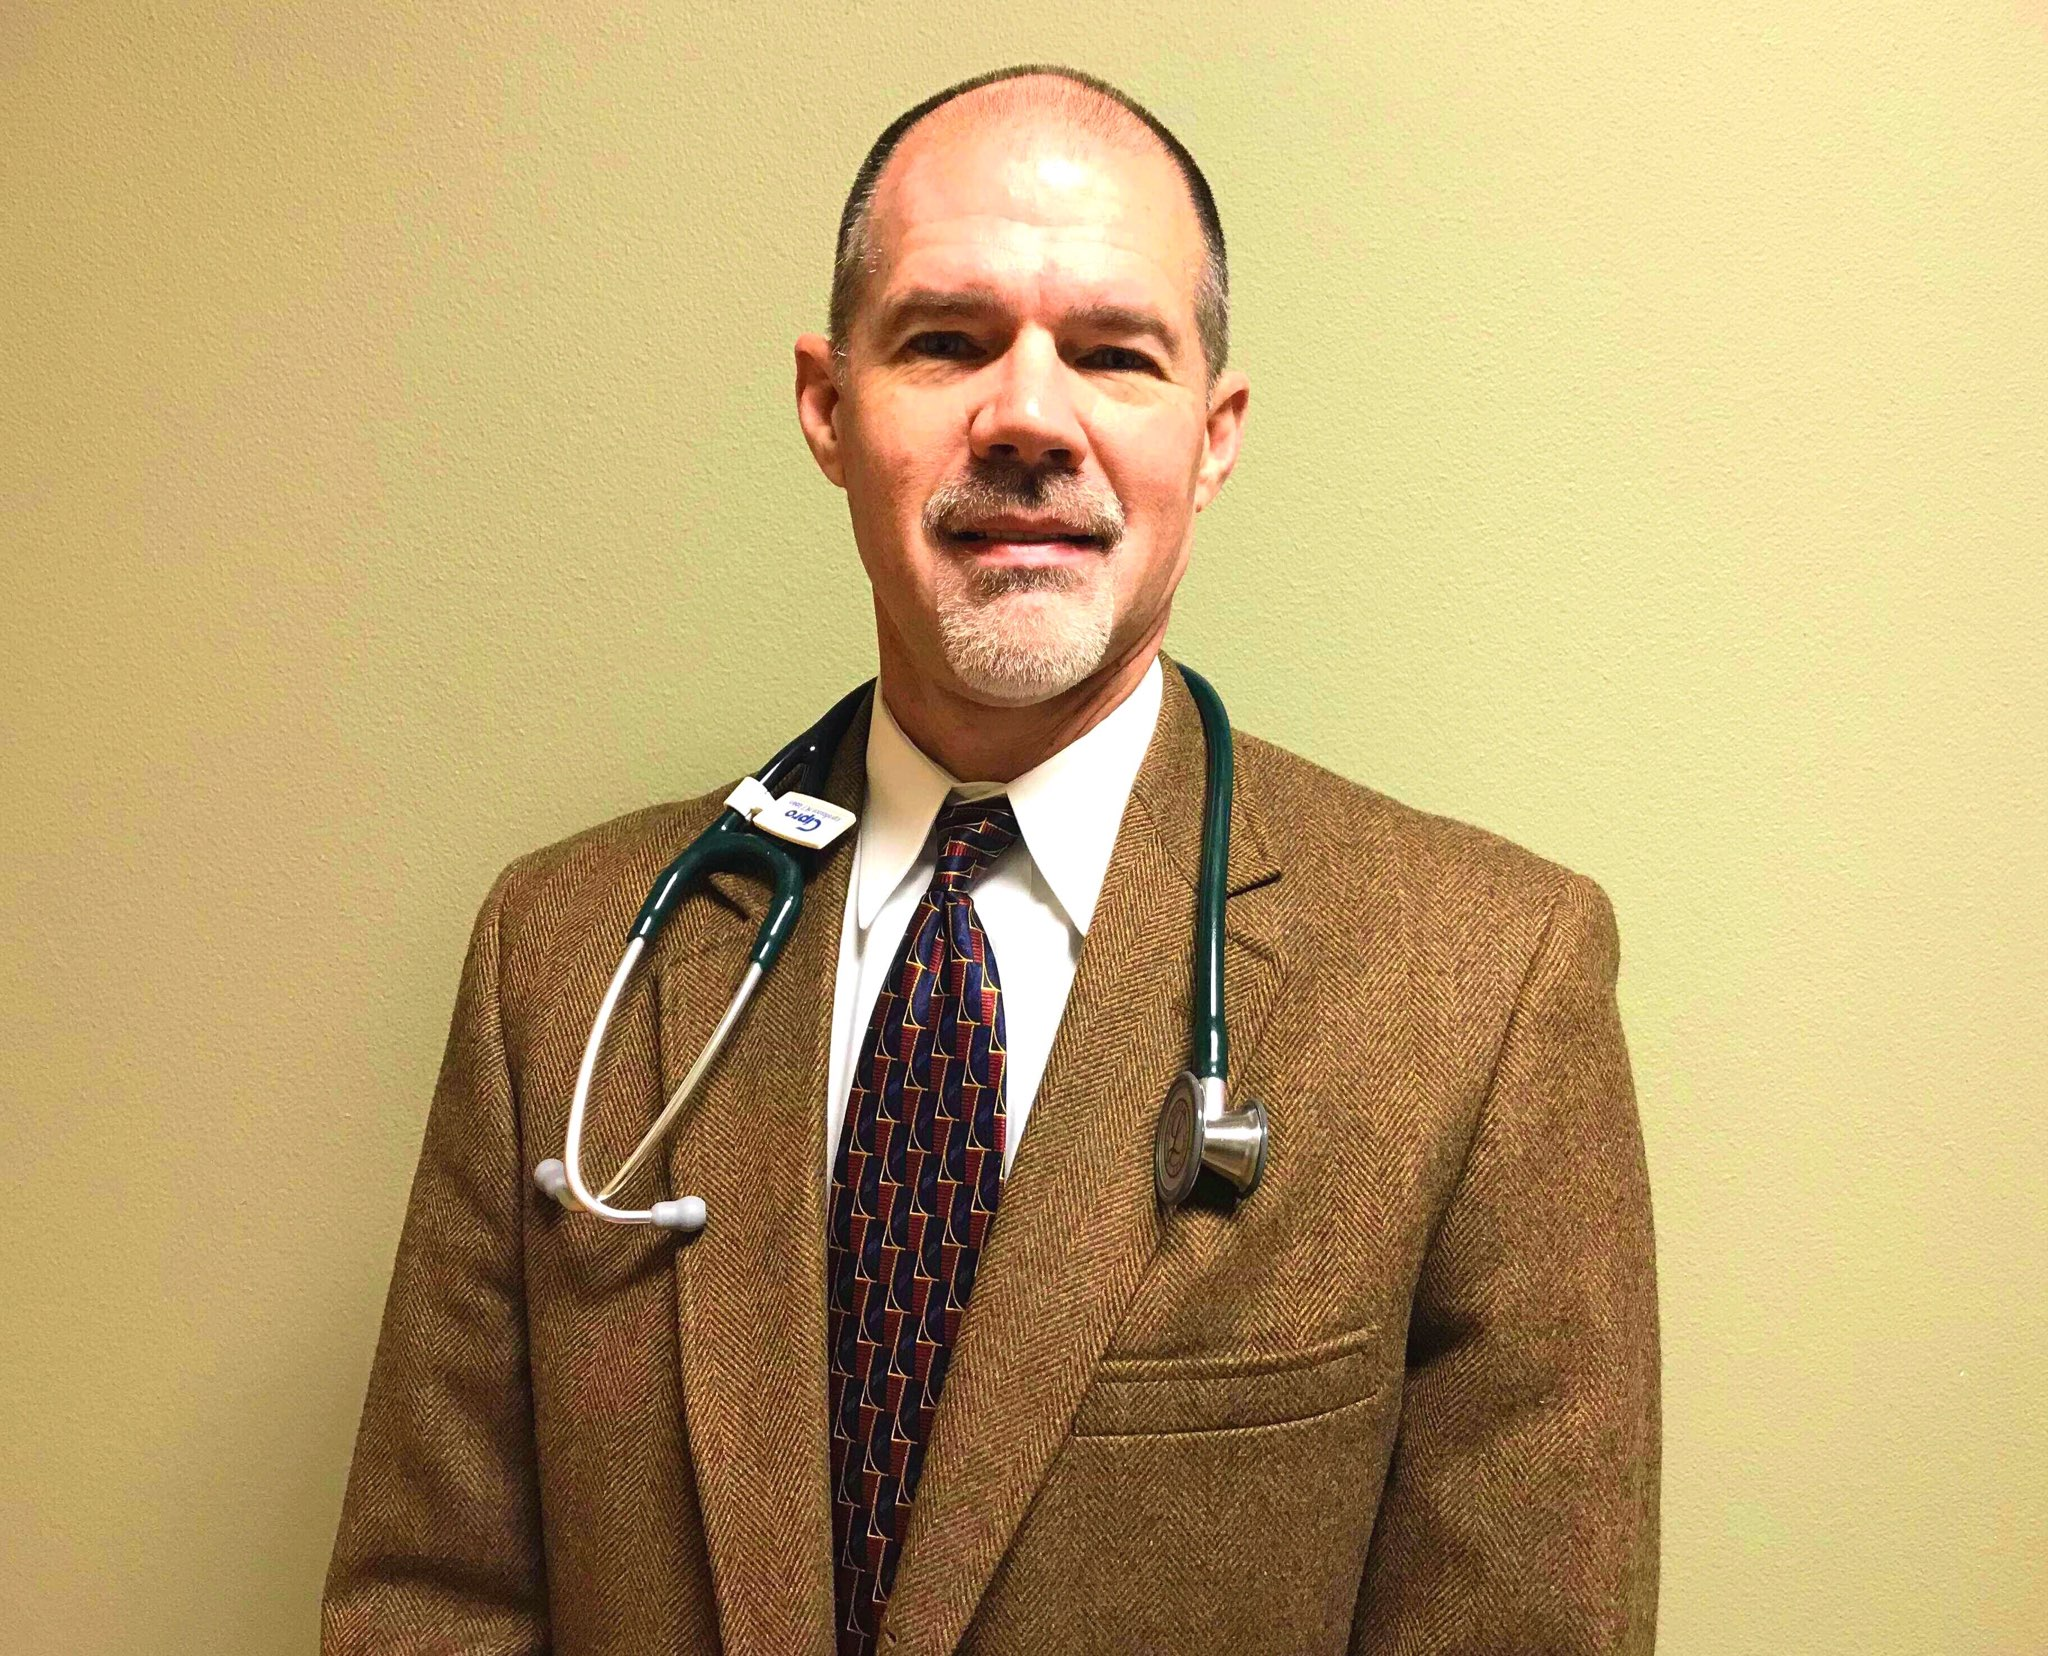 David Lunow, M.D. - David has been the Director of the Emergency Room at Texas Health Cleburne for over a decade.